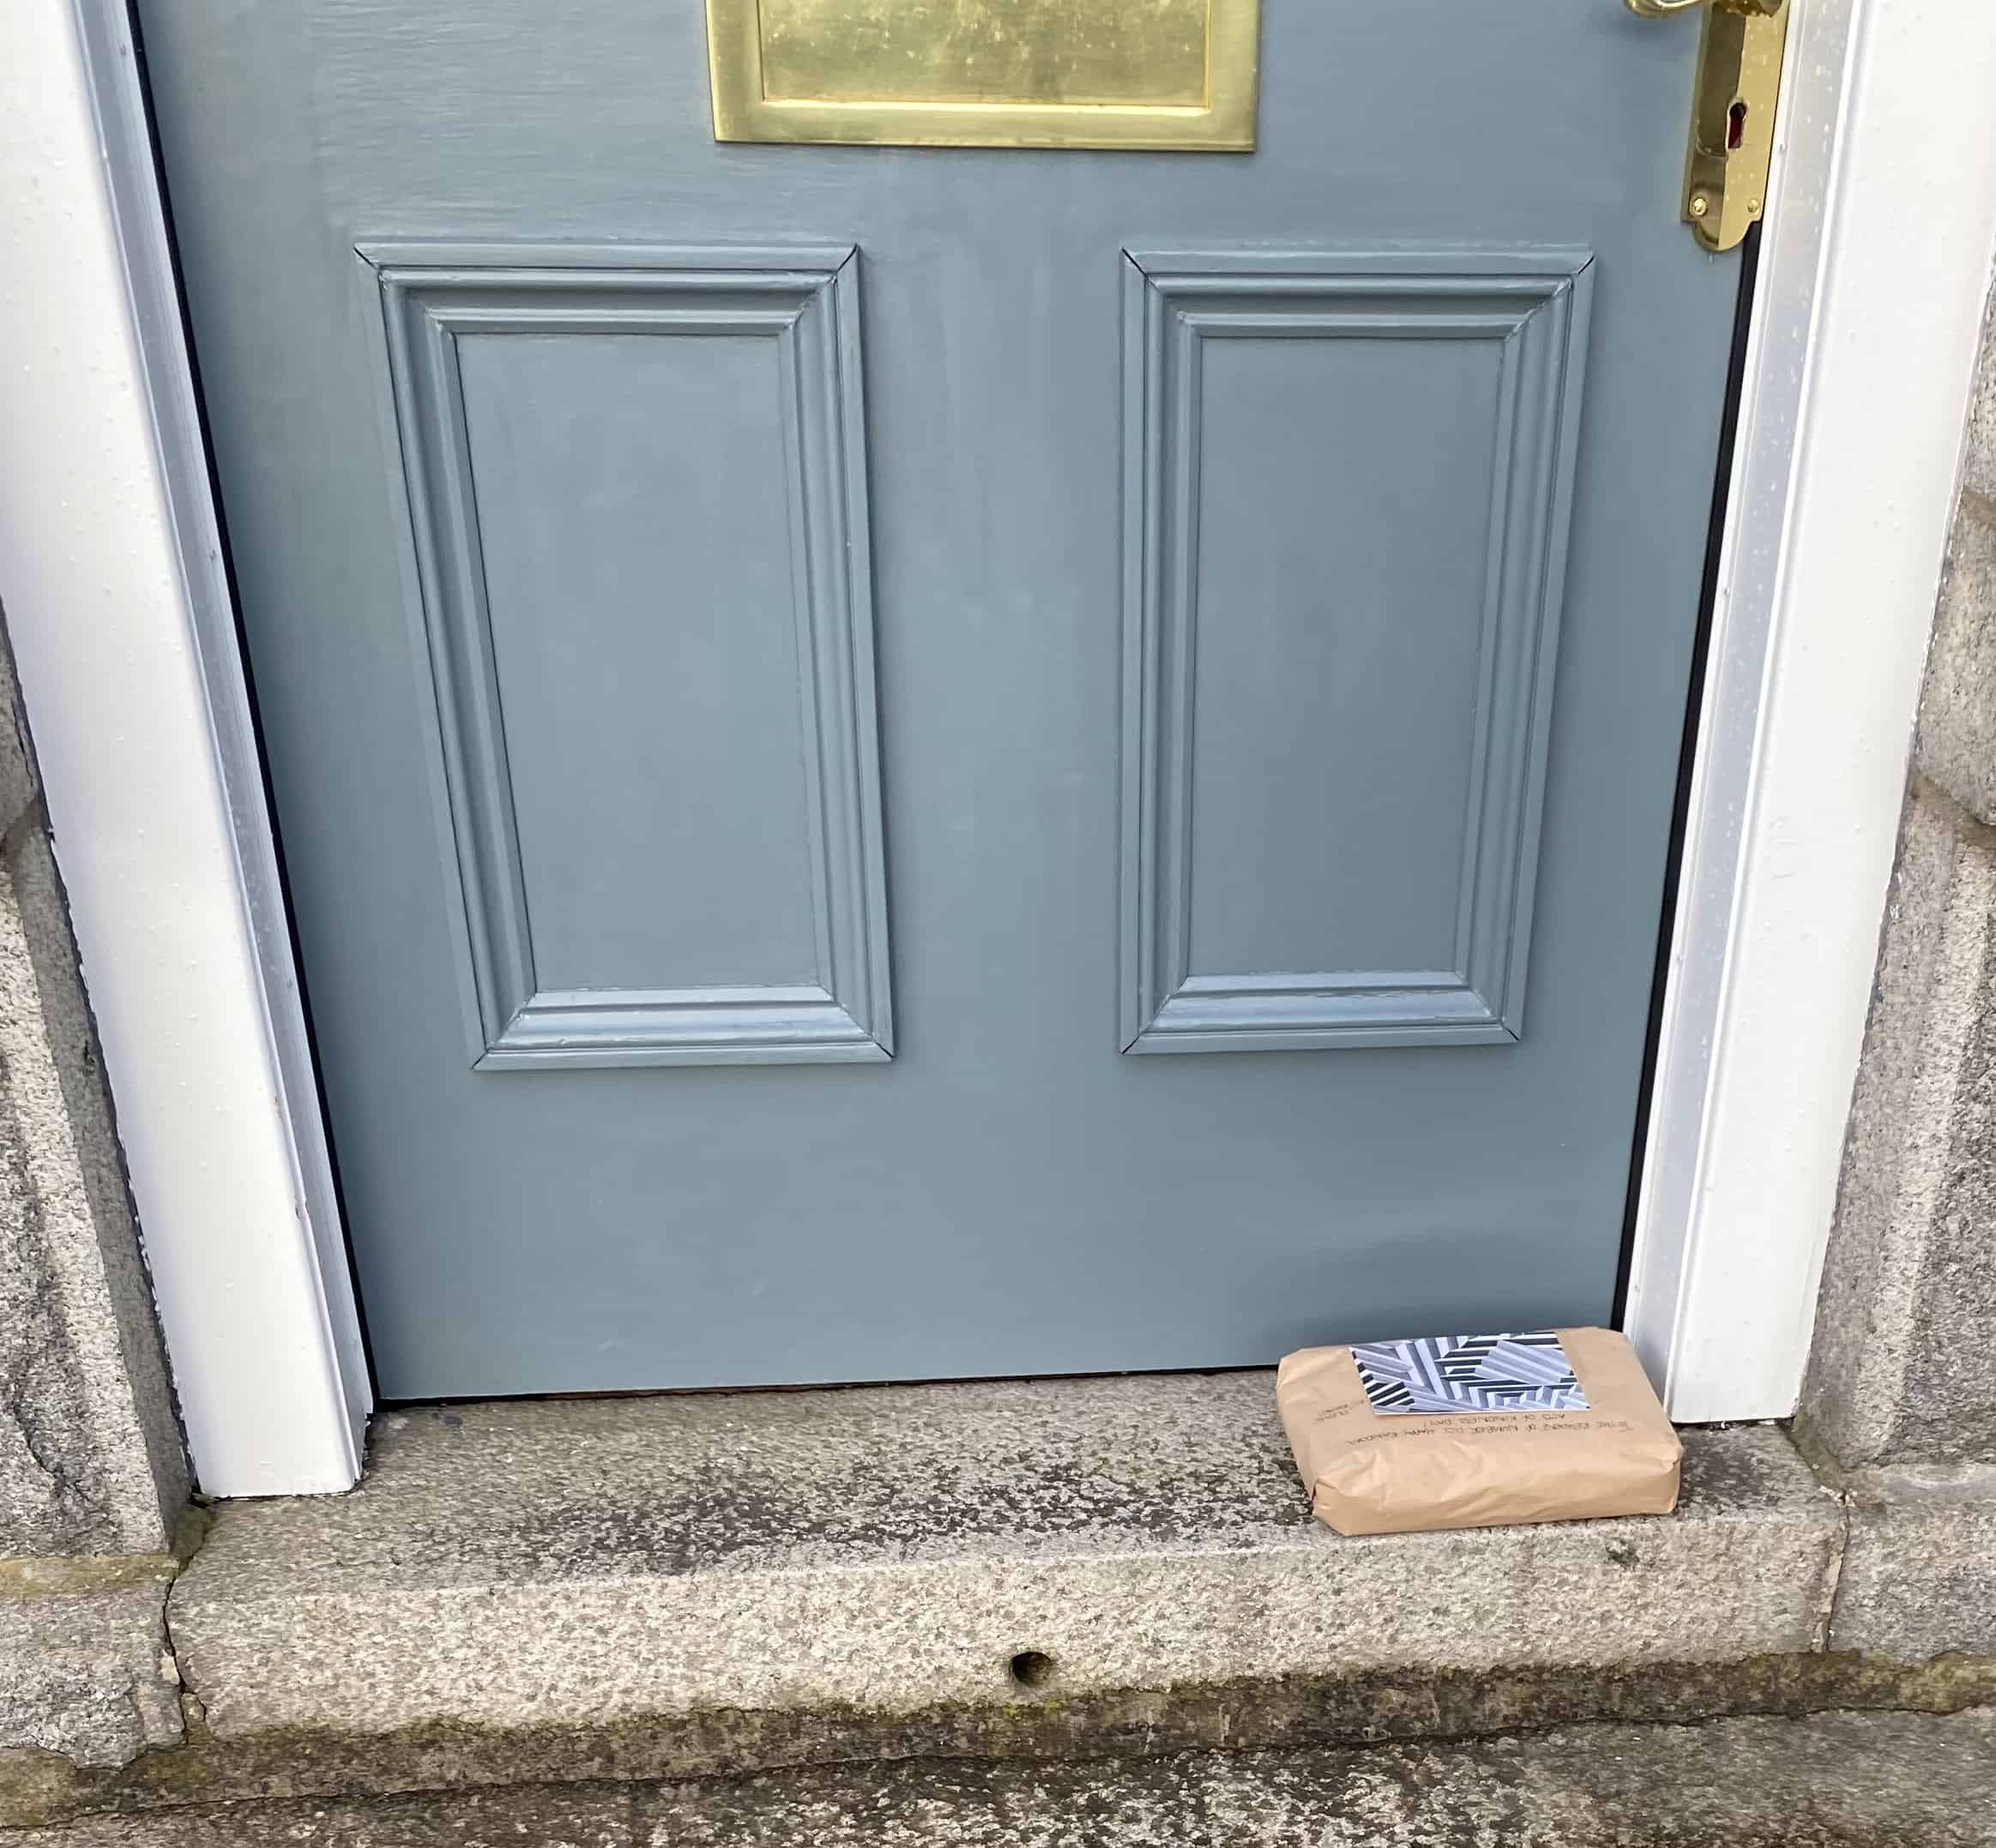 Front door step with package sitting on it